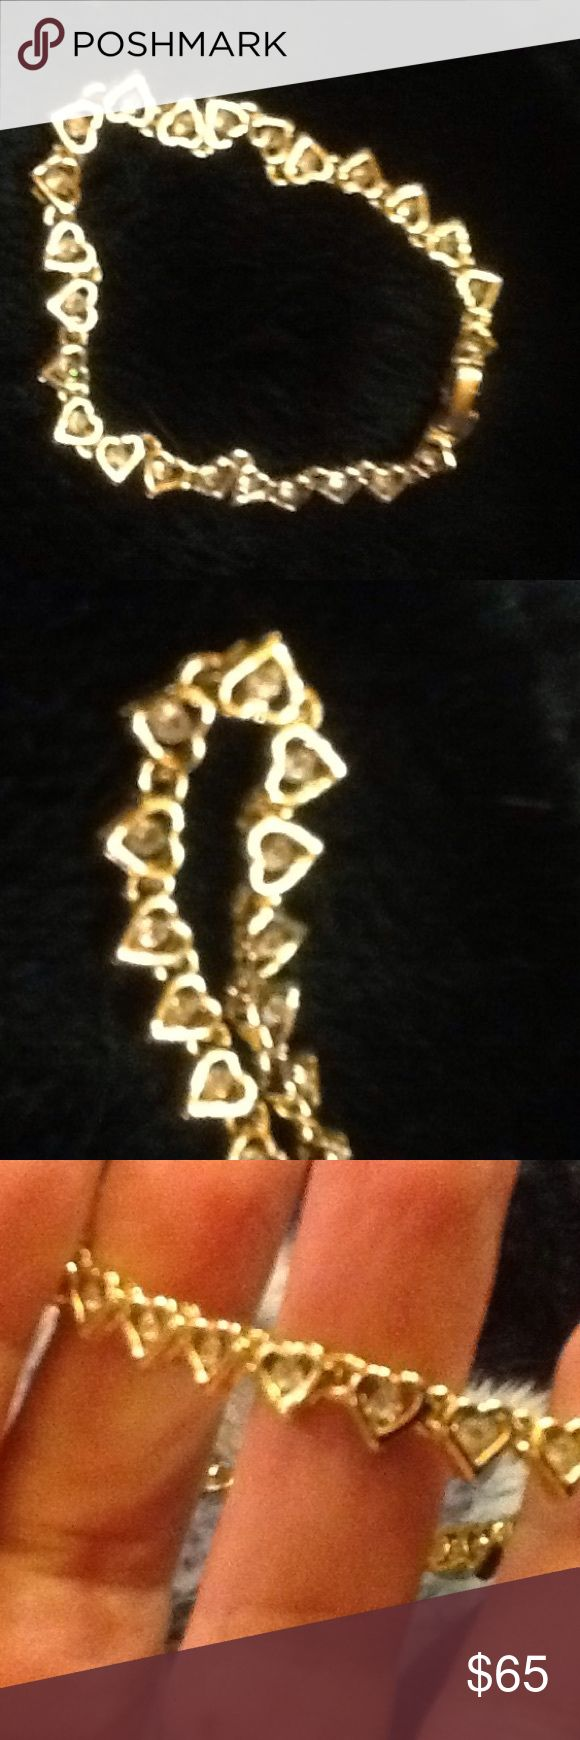 💝🎉SALE high quality costume 💝SALE🎉🎉🎉💝💝💝🎉 High quality costume jewelry all hearts with cubic zirconia just beautiful standard women's size ., picture doesn't do it justice I have bad lighting .flip closure for do it yourself!!!💍💍. Neiman Marcus Jewelry Bracelets